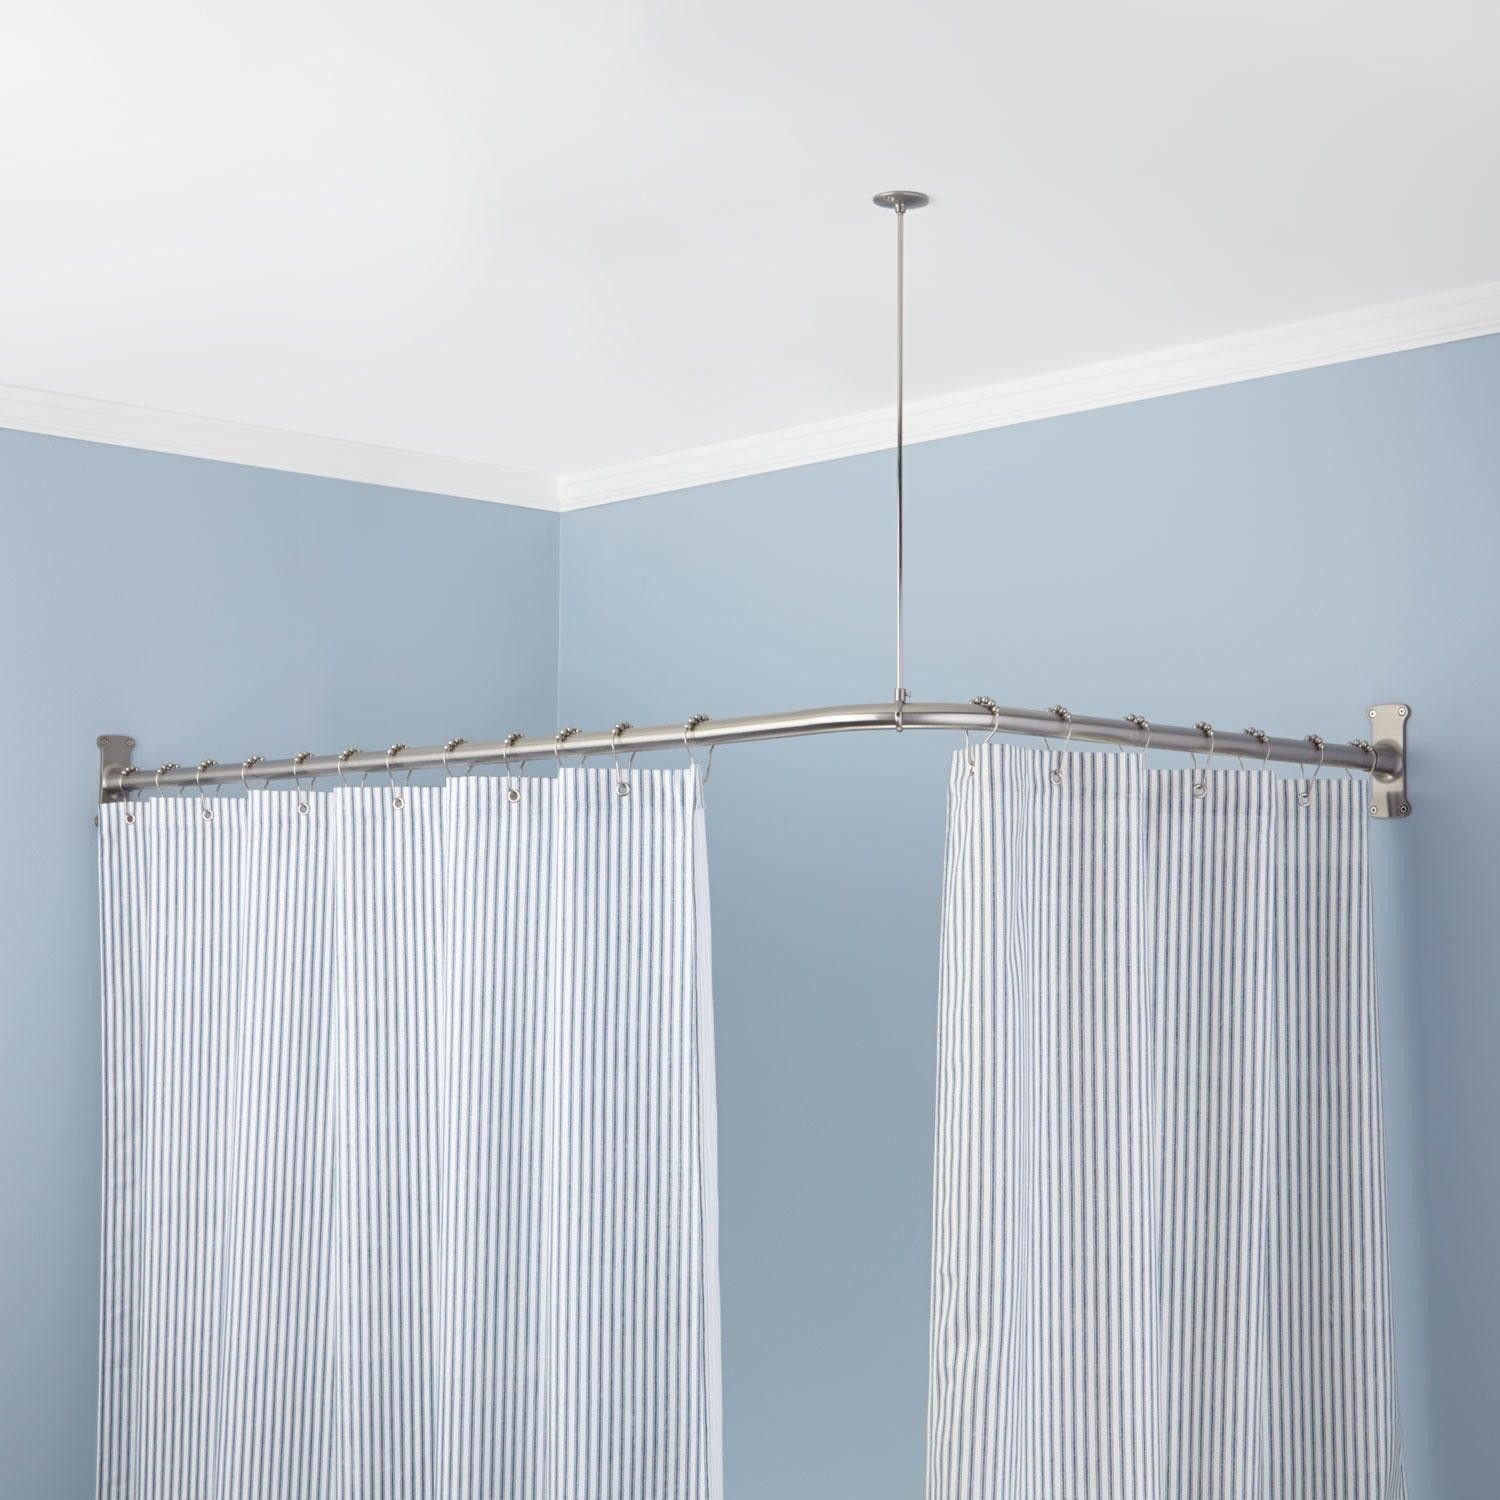 Curved Shower Curtain Rod For Corner Bath